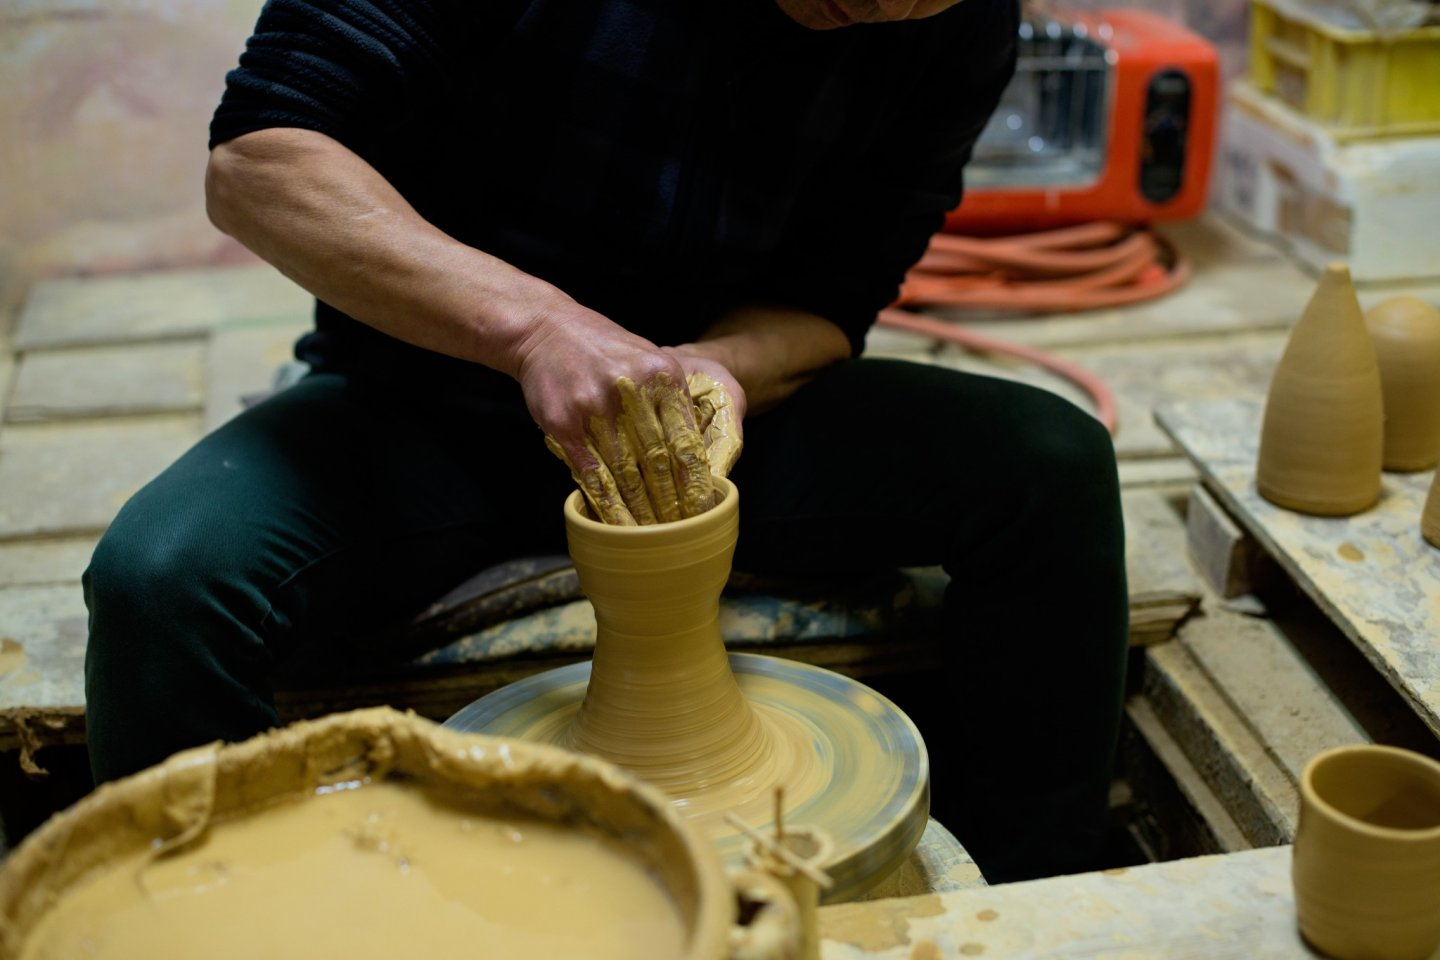 Mr. Kaneko working on a piece of pottery